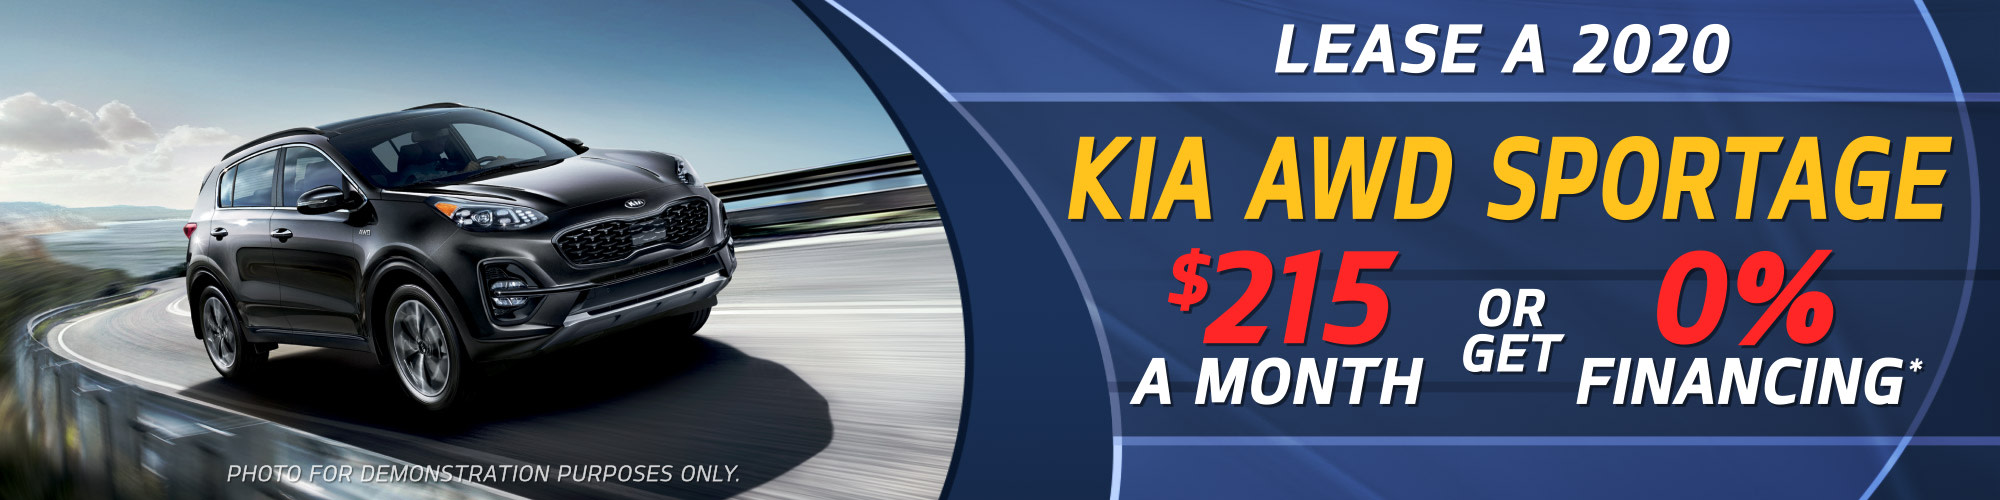 New Kia Lease Specials in Littleton near Denver